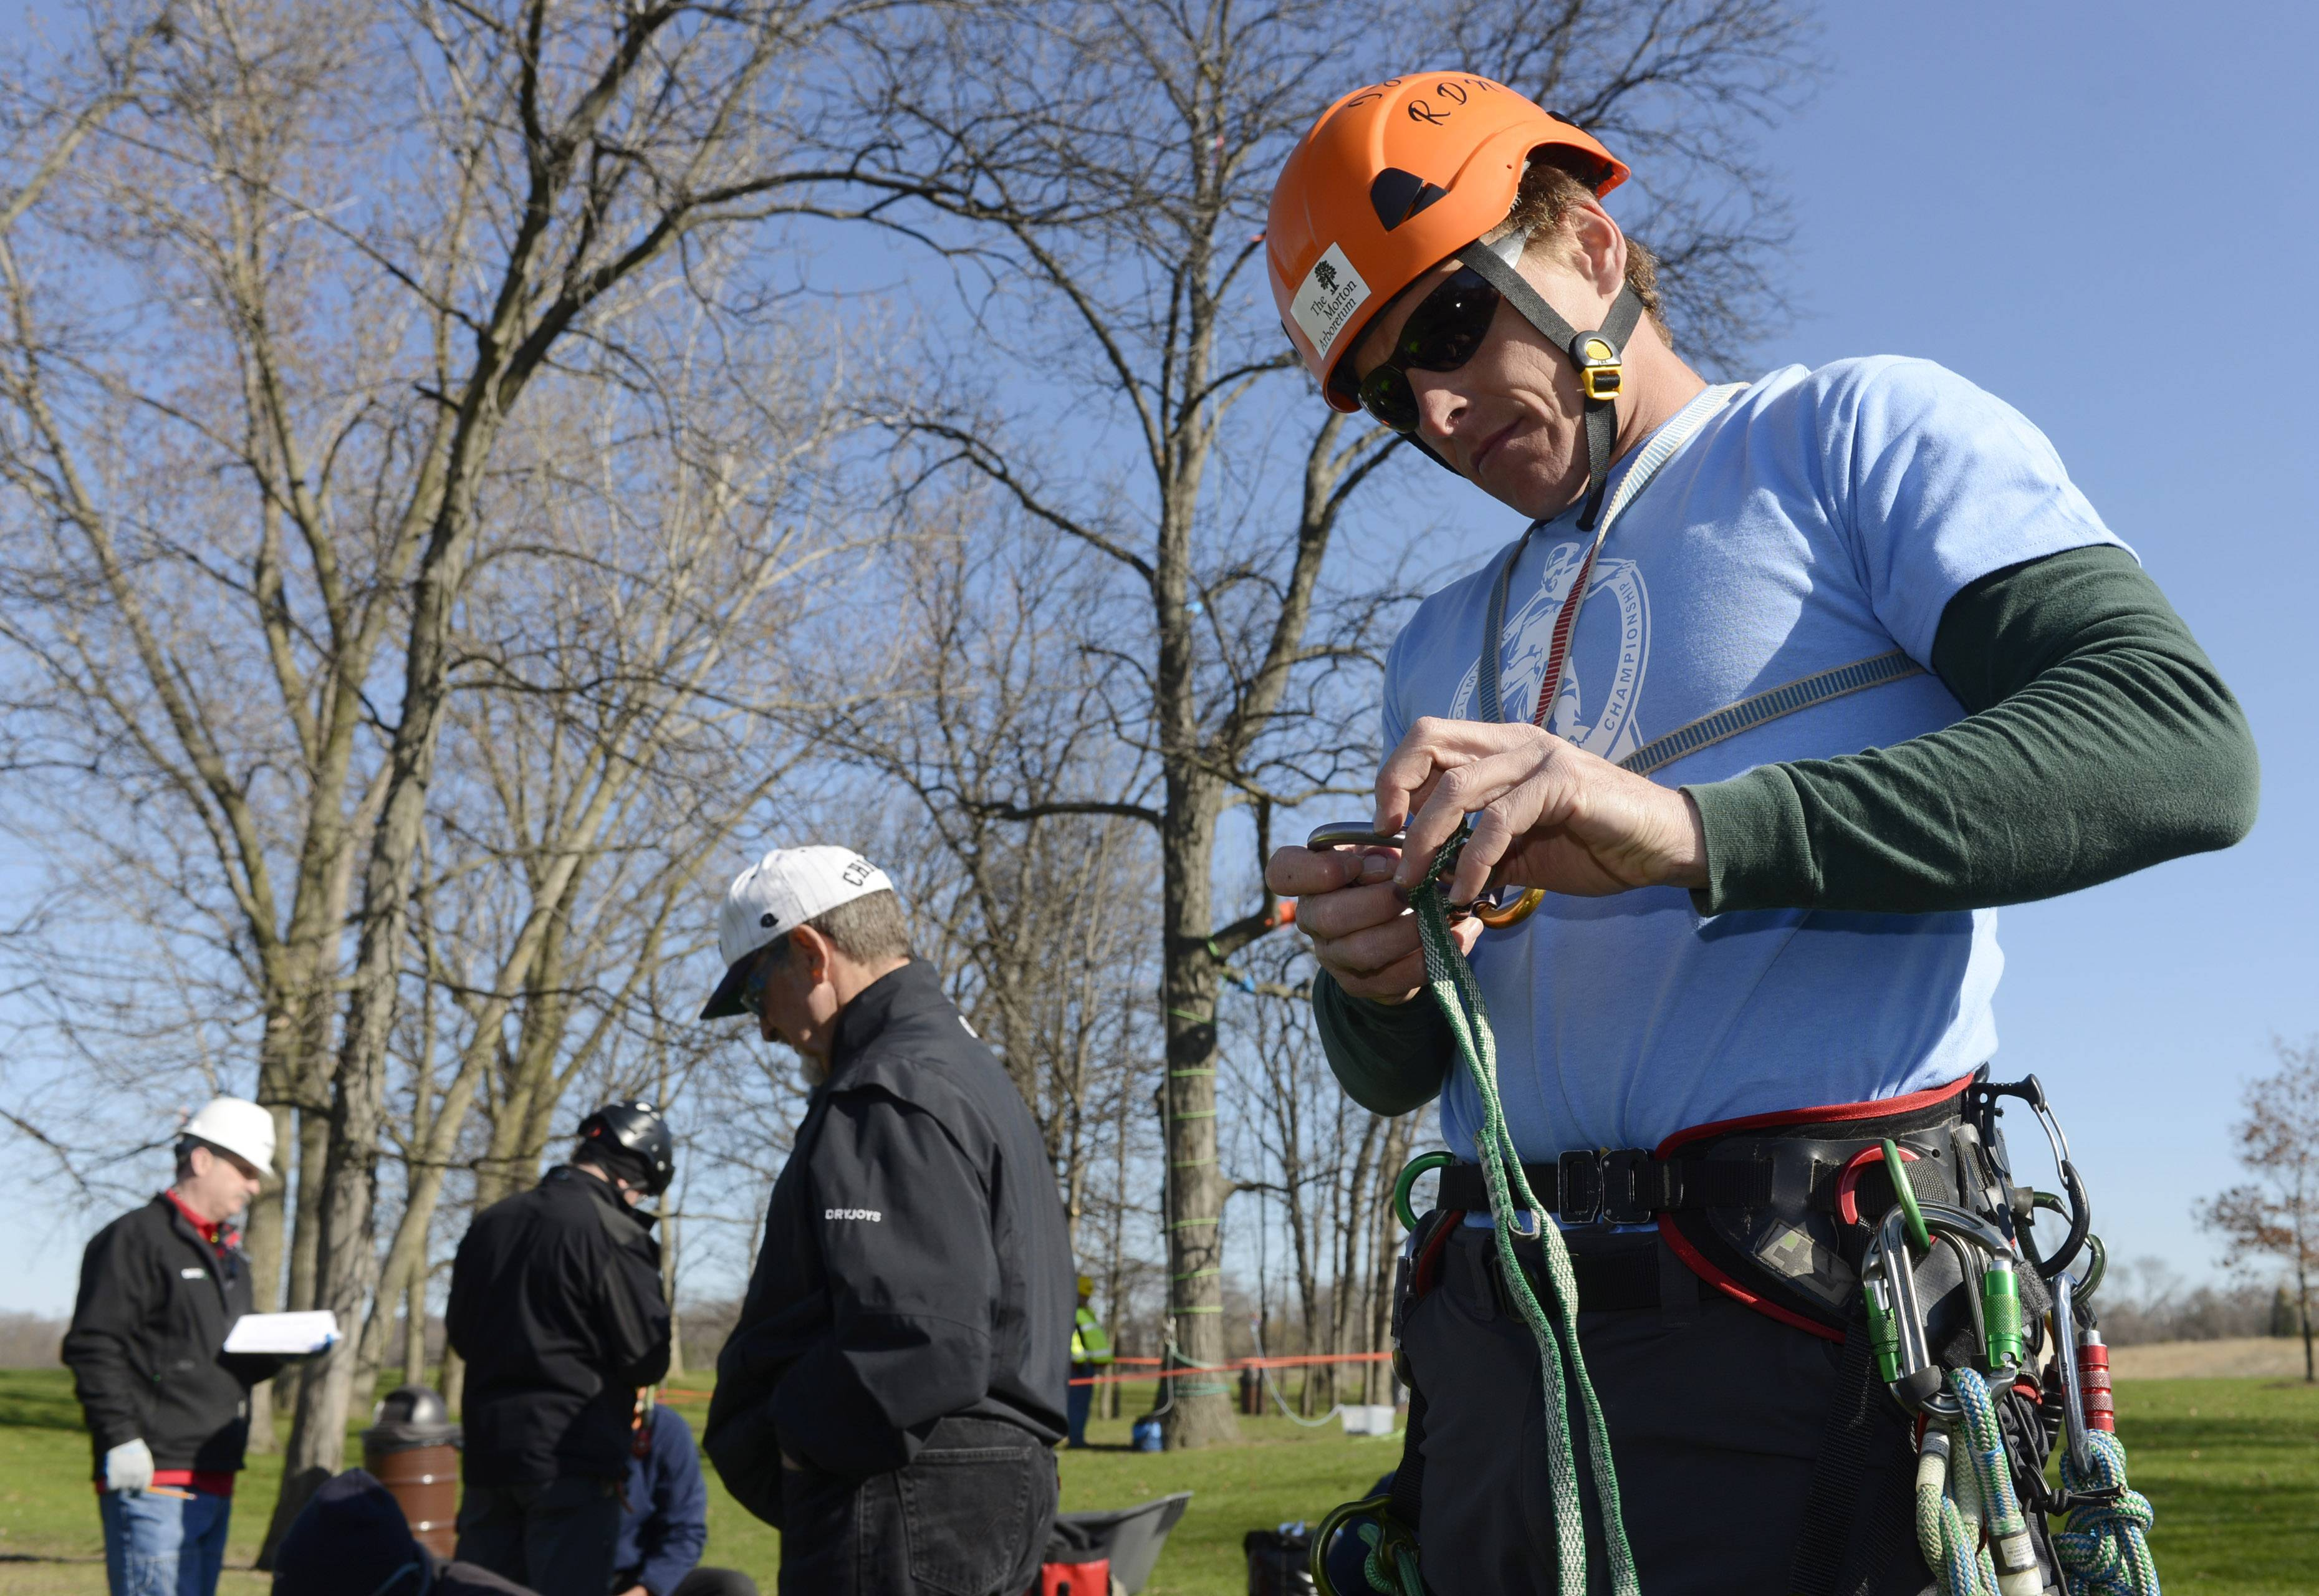 Beau Nagan, who works at the Morton Arboretum in Lisle, gets his equipment ready Saturday during the Illinois Arborist Tree Climbing Championship, held at Independence Grove near Libertyville.